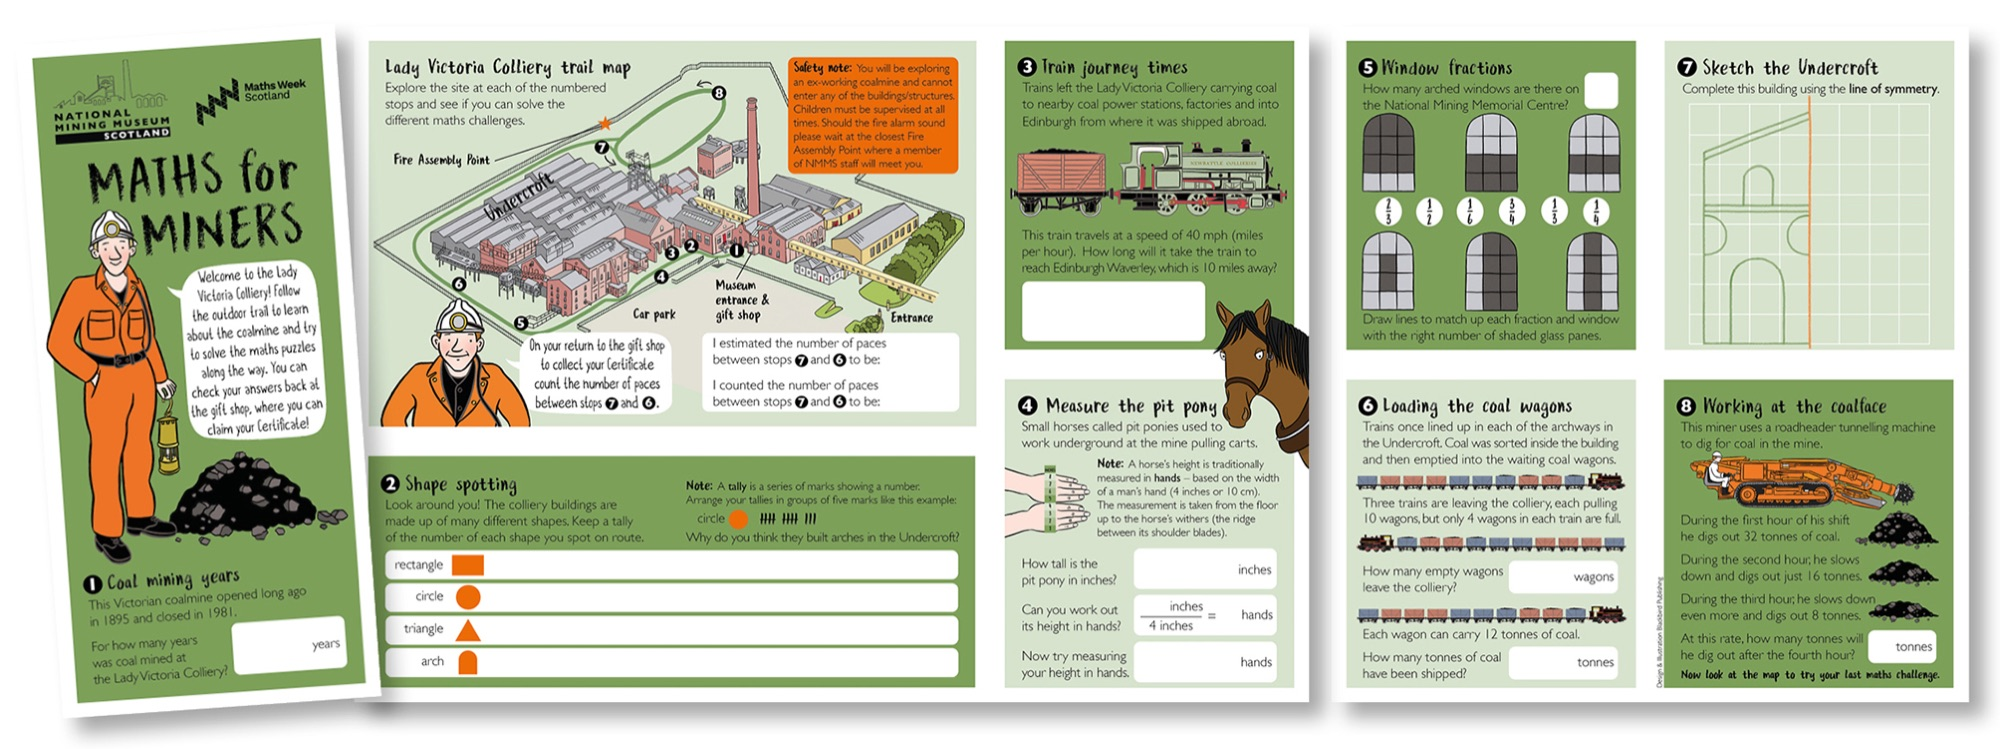 Blackbird Publishing National Mining Museum Scotland Maths for Miners outdoor activity trail